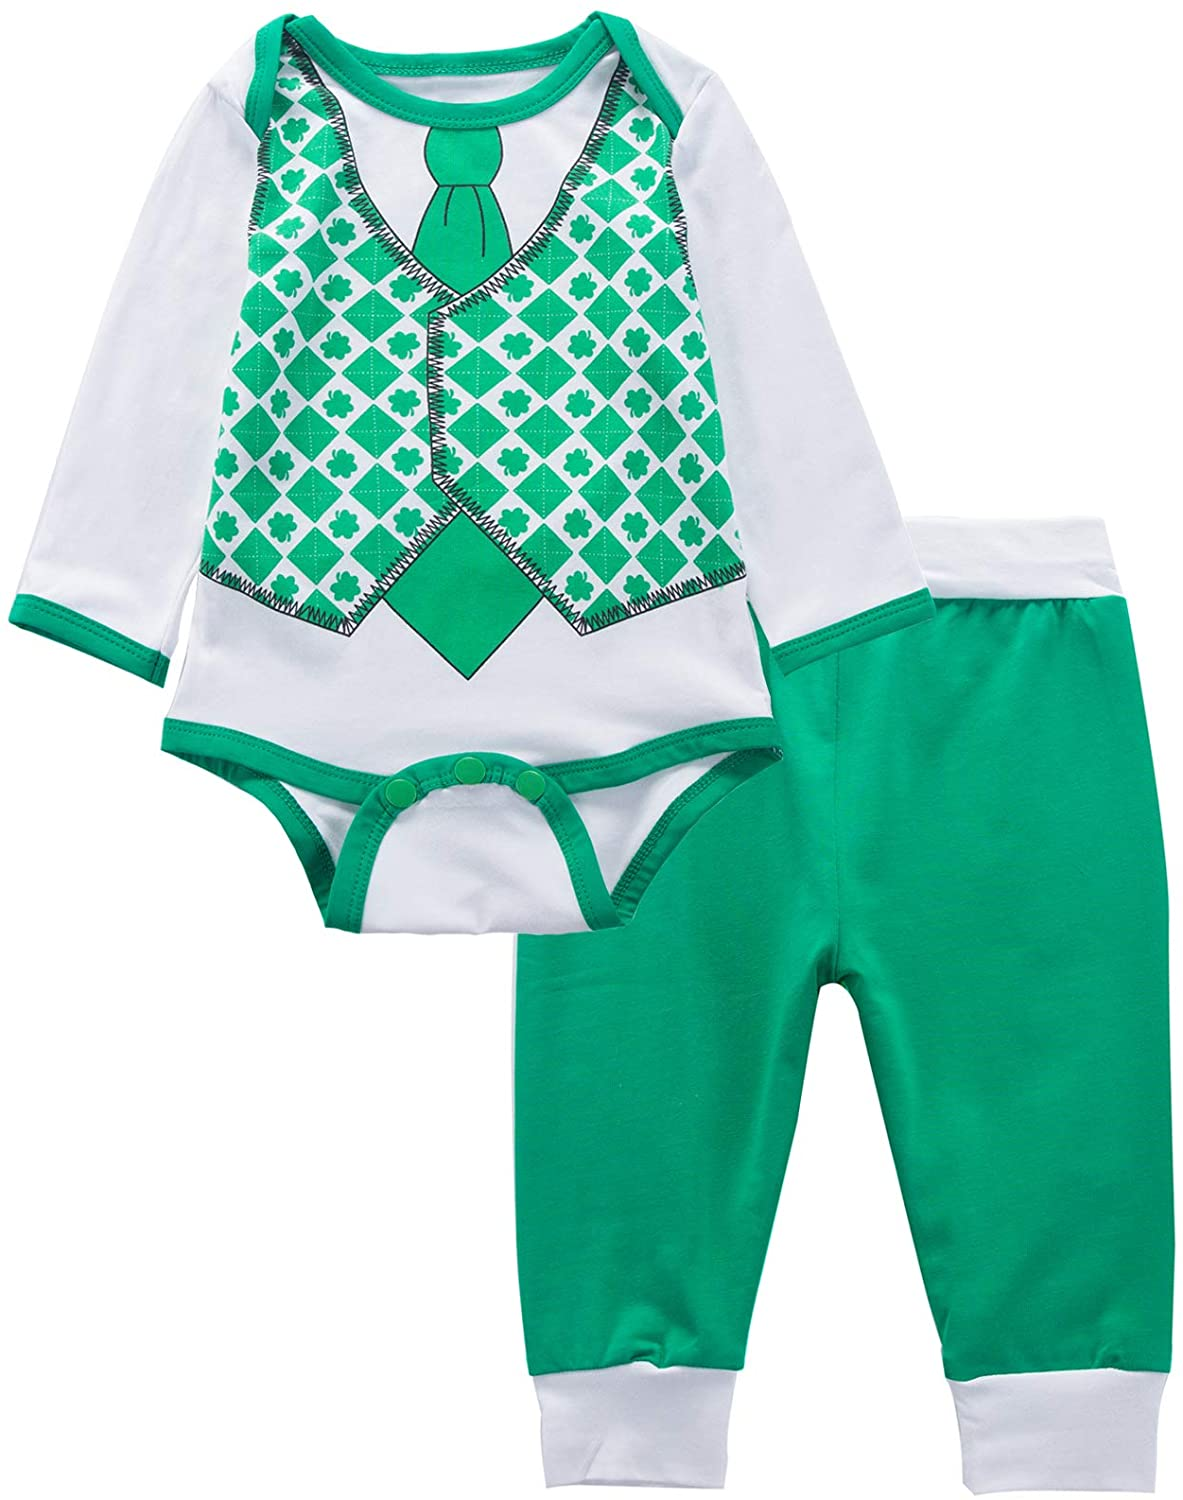 Baby Boys' Outfit Set My First St Patrick's Day Lucky Clover Long Sleeve Bodysuit